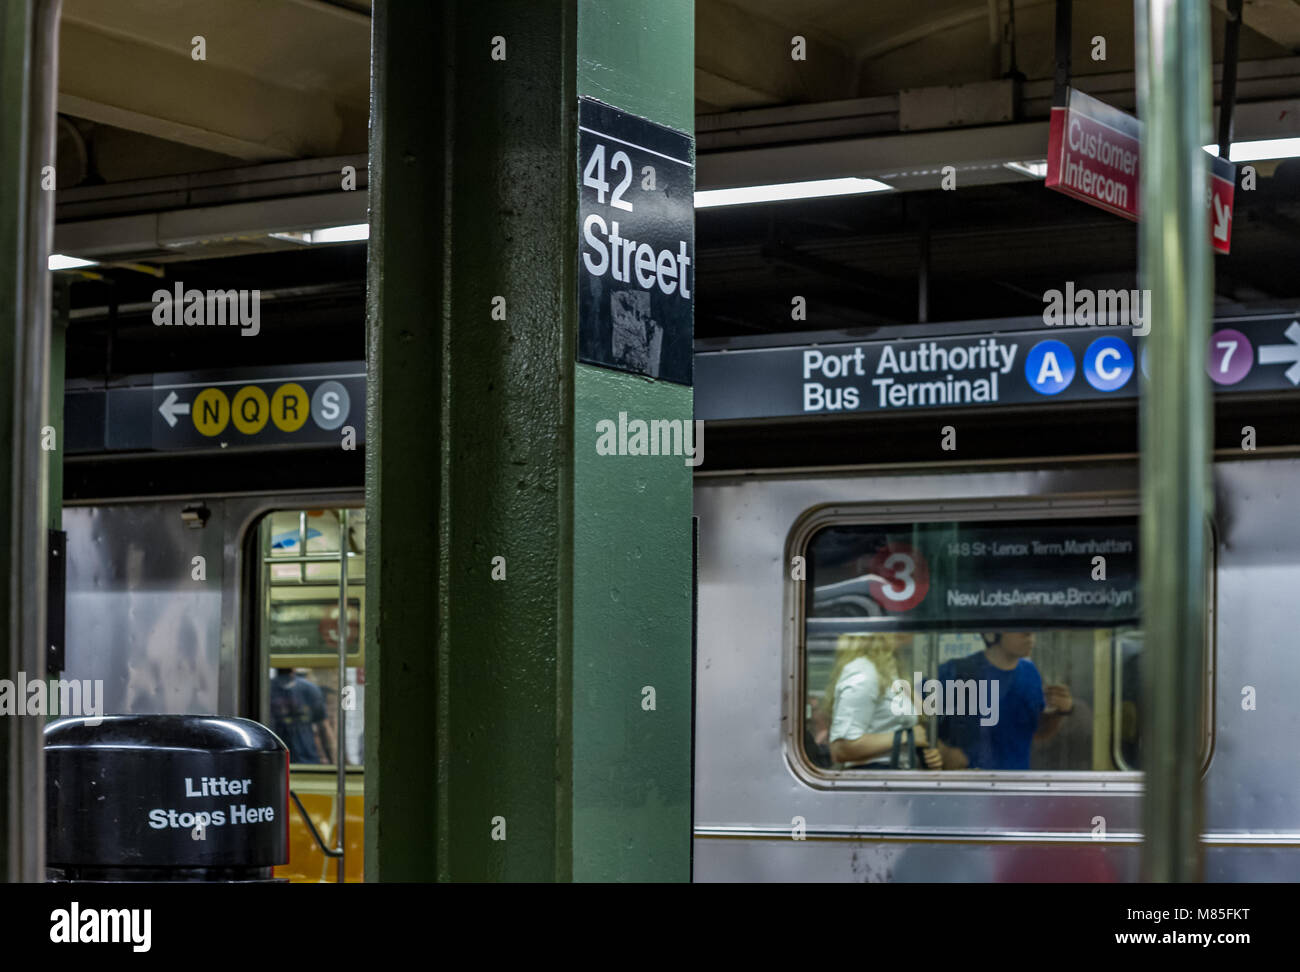 A train at 42nd Street station , New York City - Stock Image